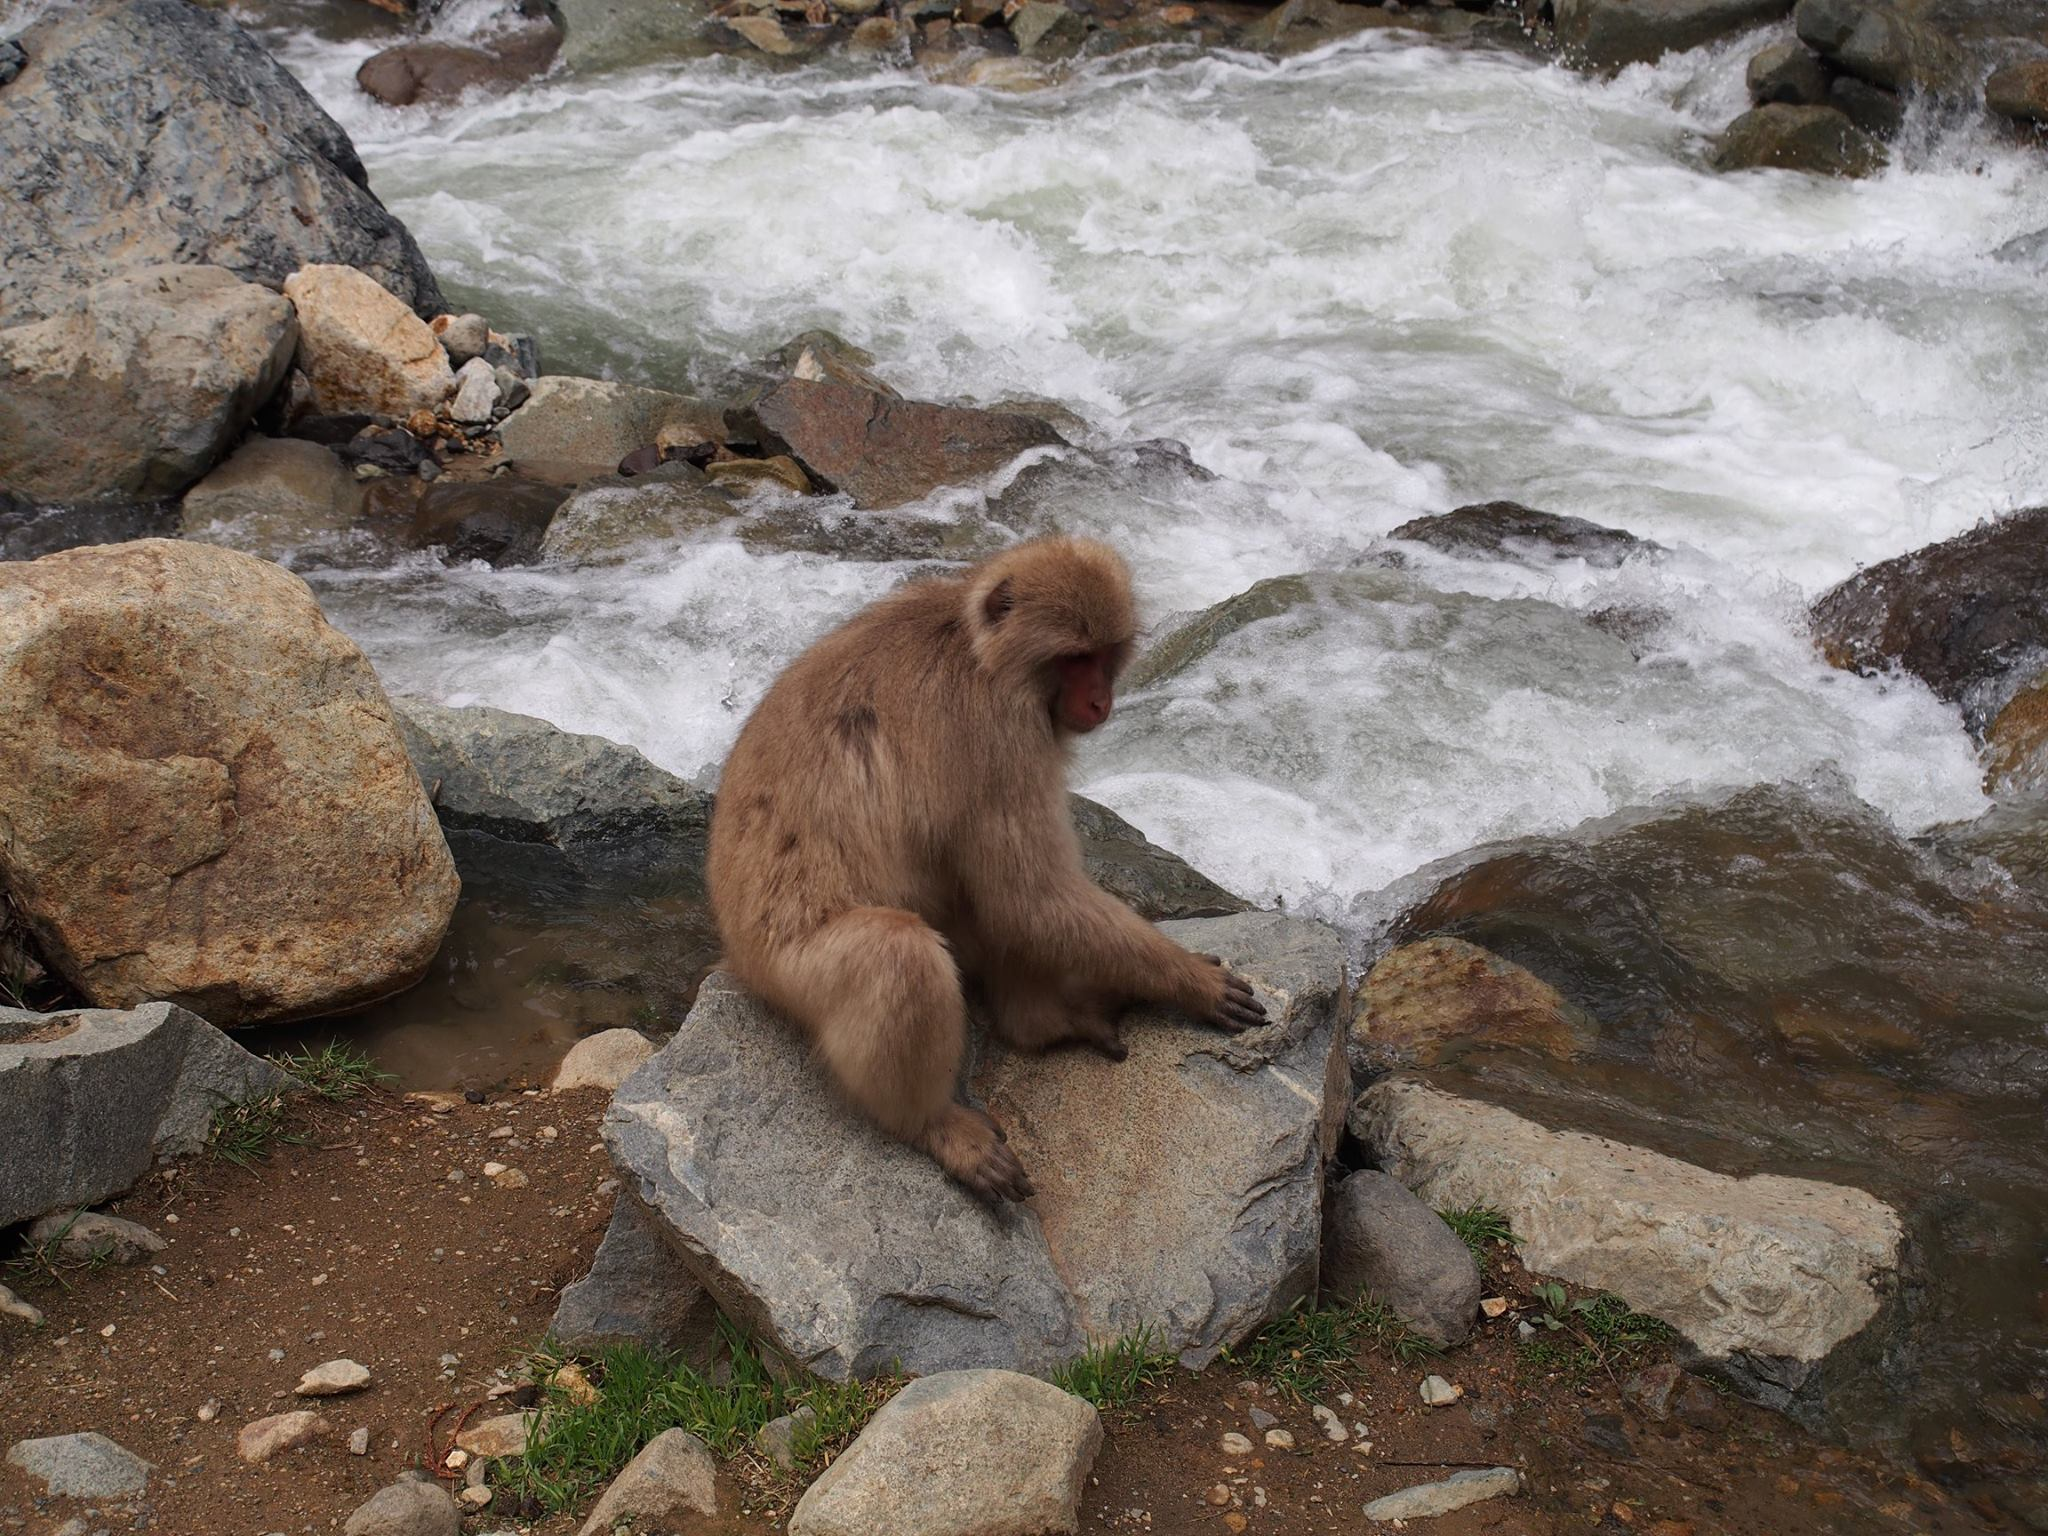 macaque snow monkey sitting in front of stream